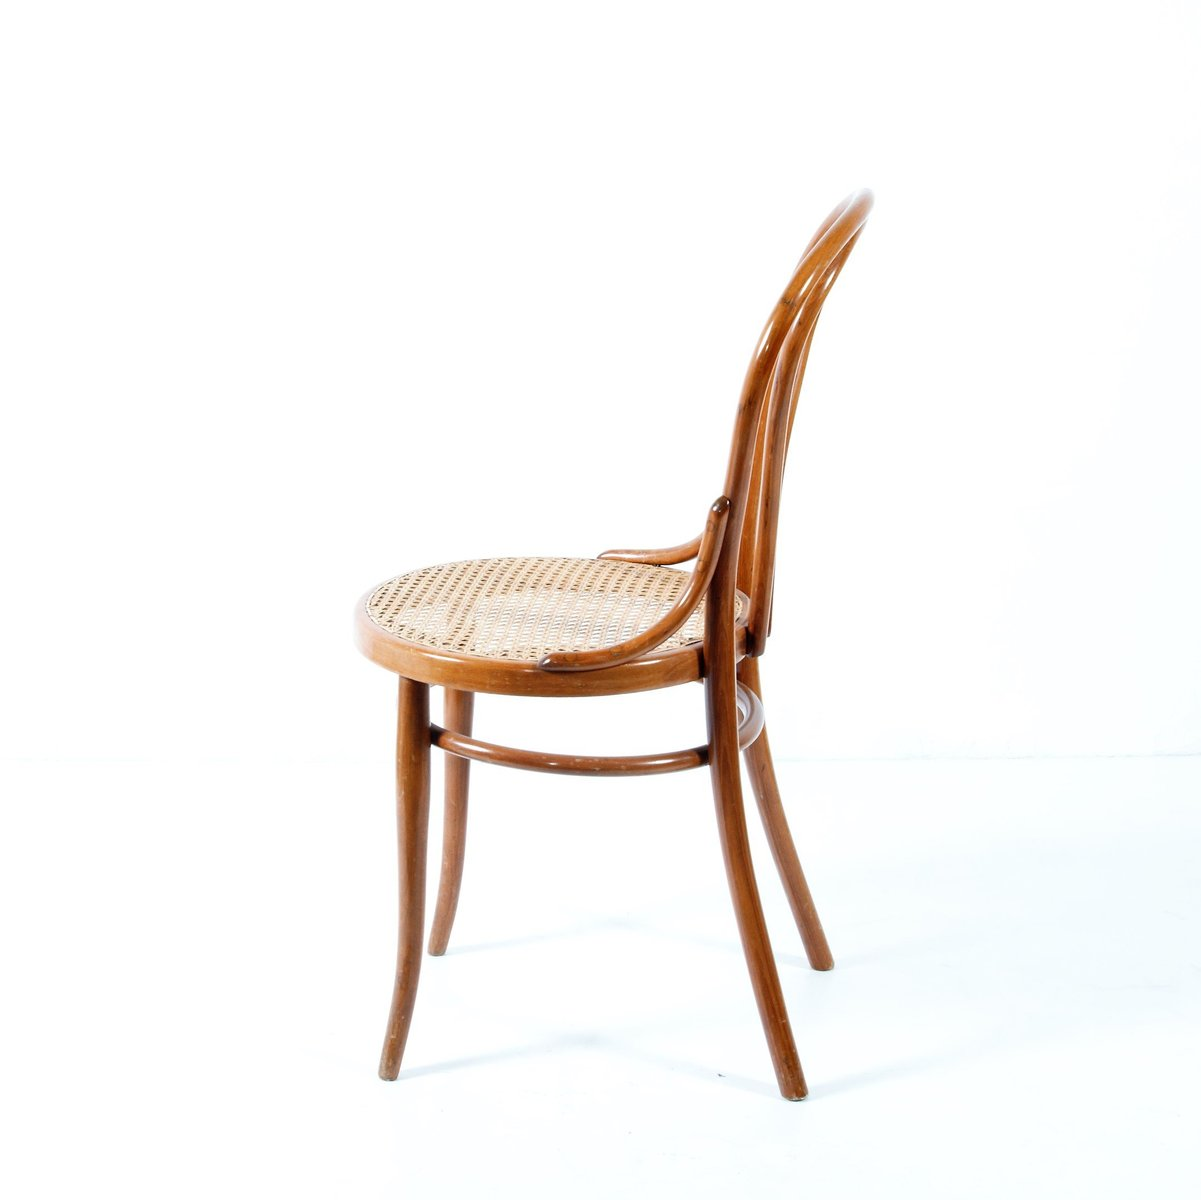 18 Chair By Michael Thonet For Thonet